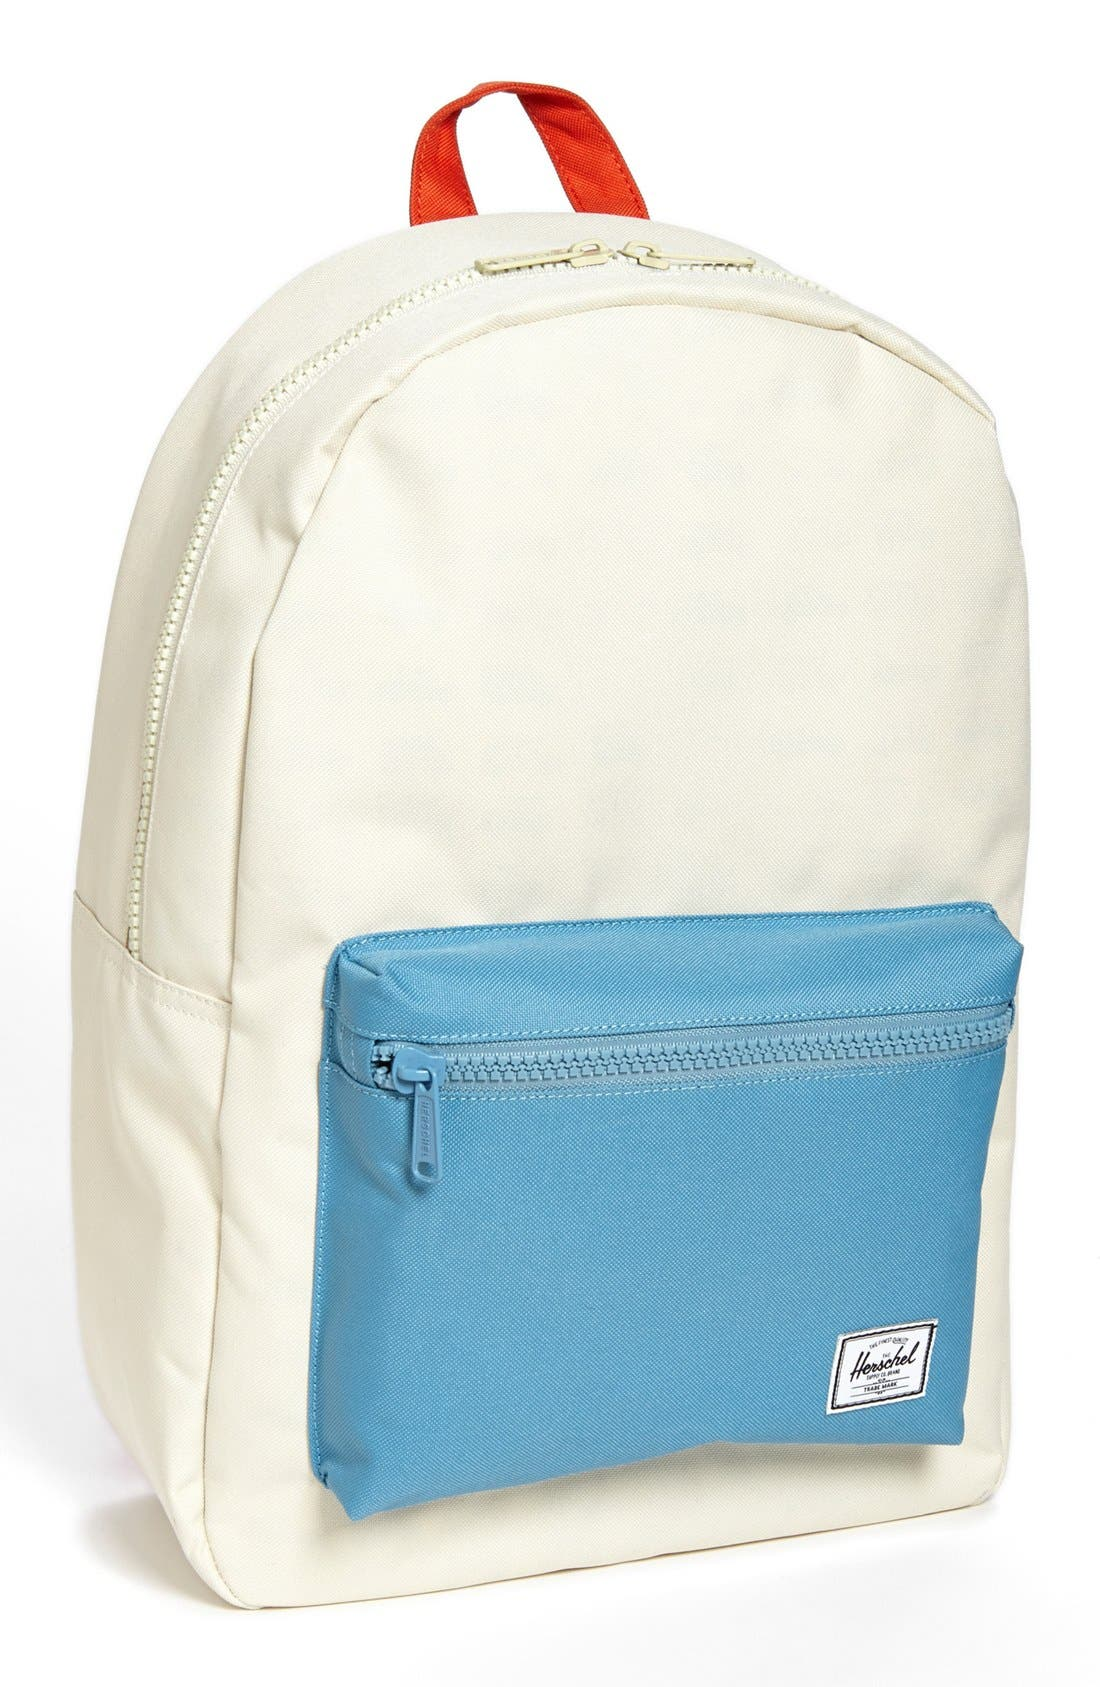 Alternate Image 1 Selected - Herschel Supply Co. 'Settlement - Rad Cars with Rad Surfboards Collection' Backpack